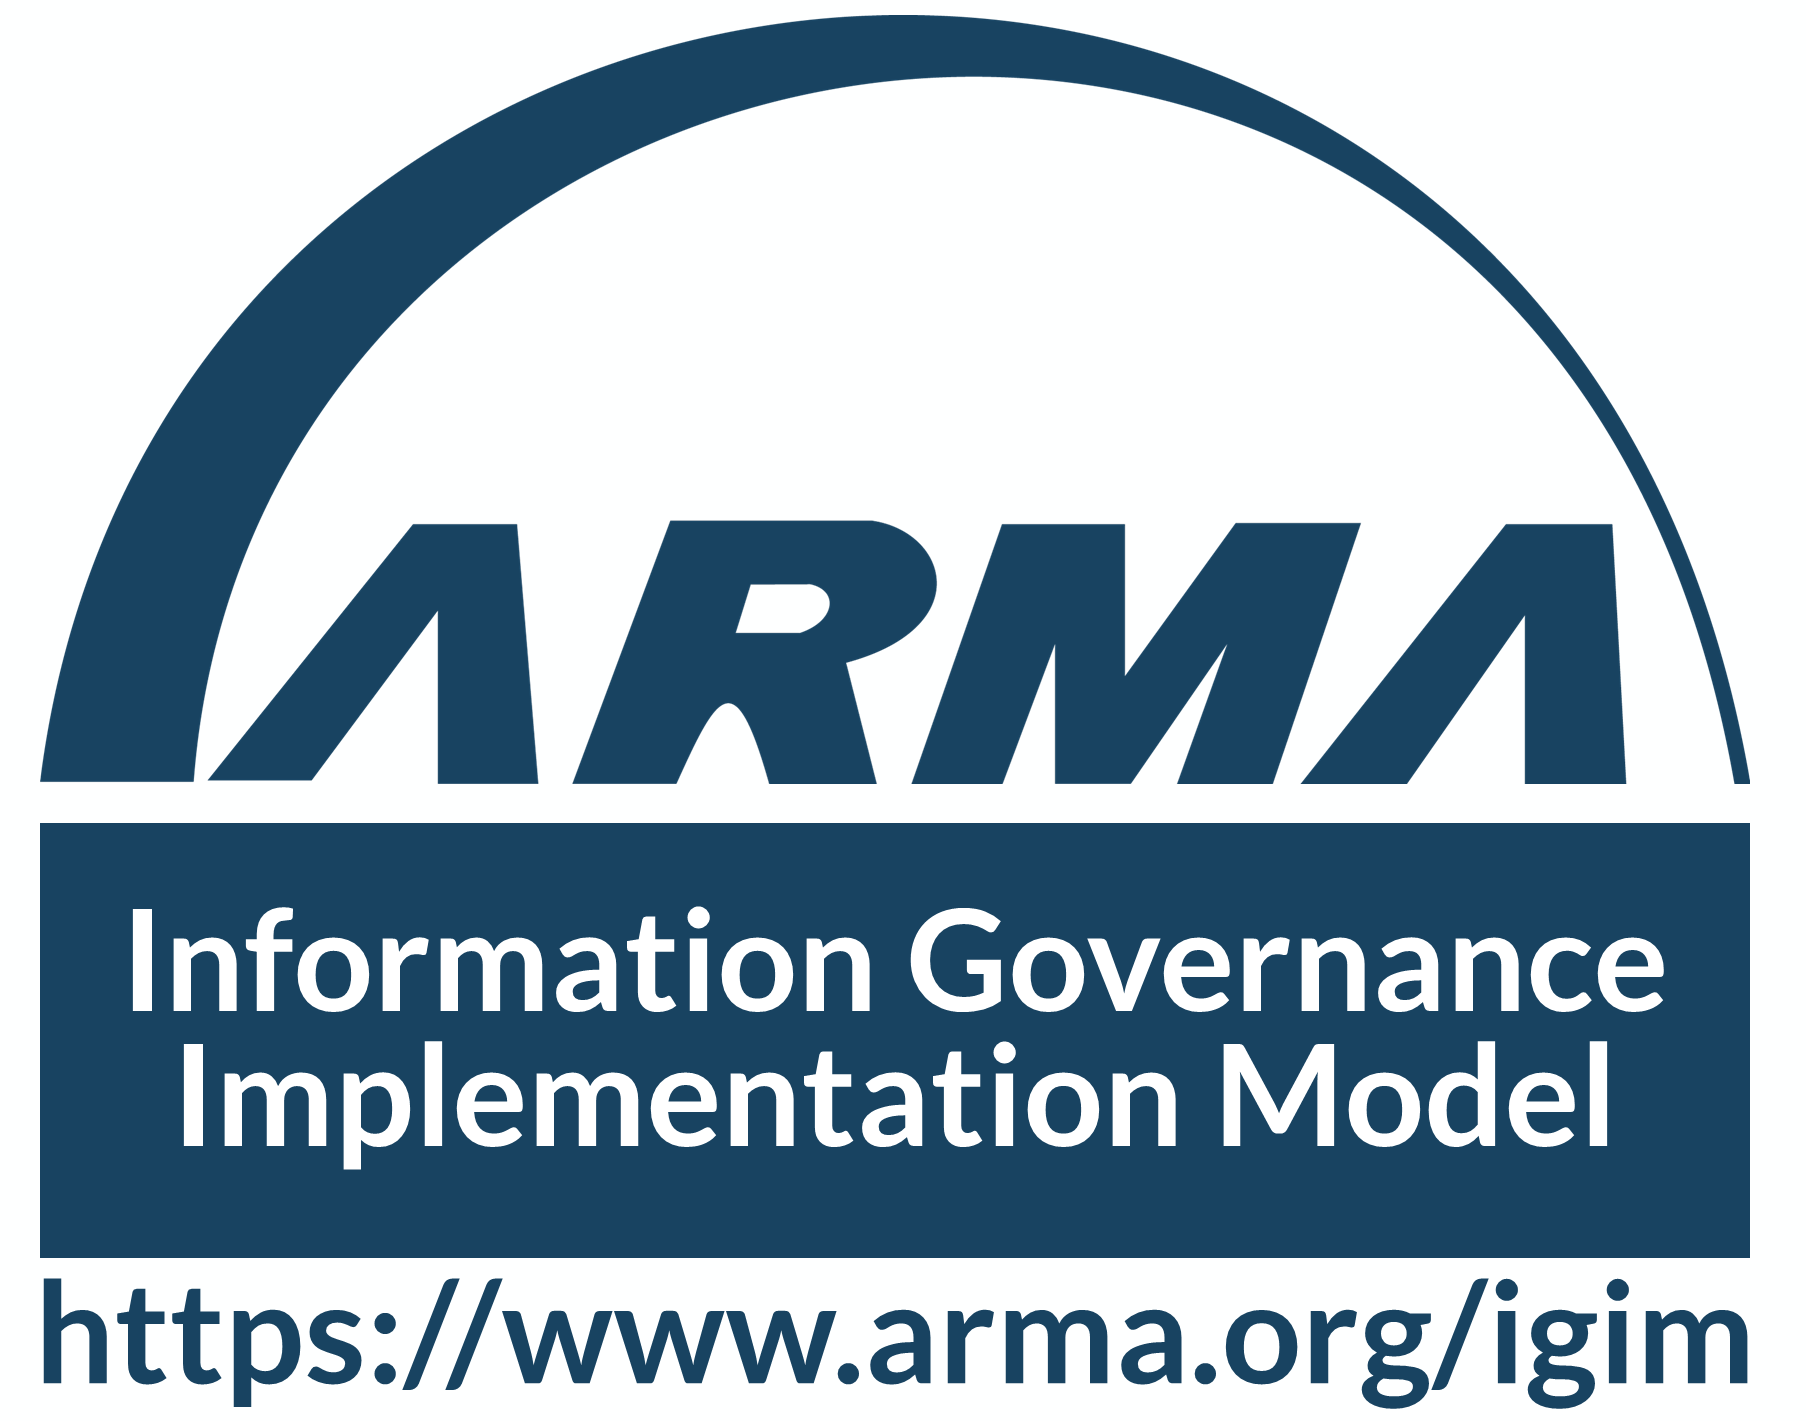 ARMA Information Governance Implementation Model Logo